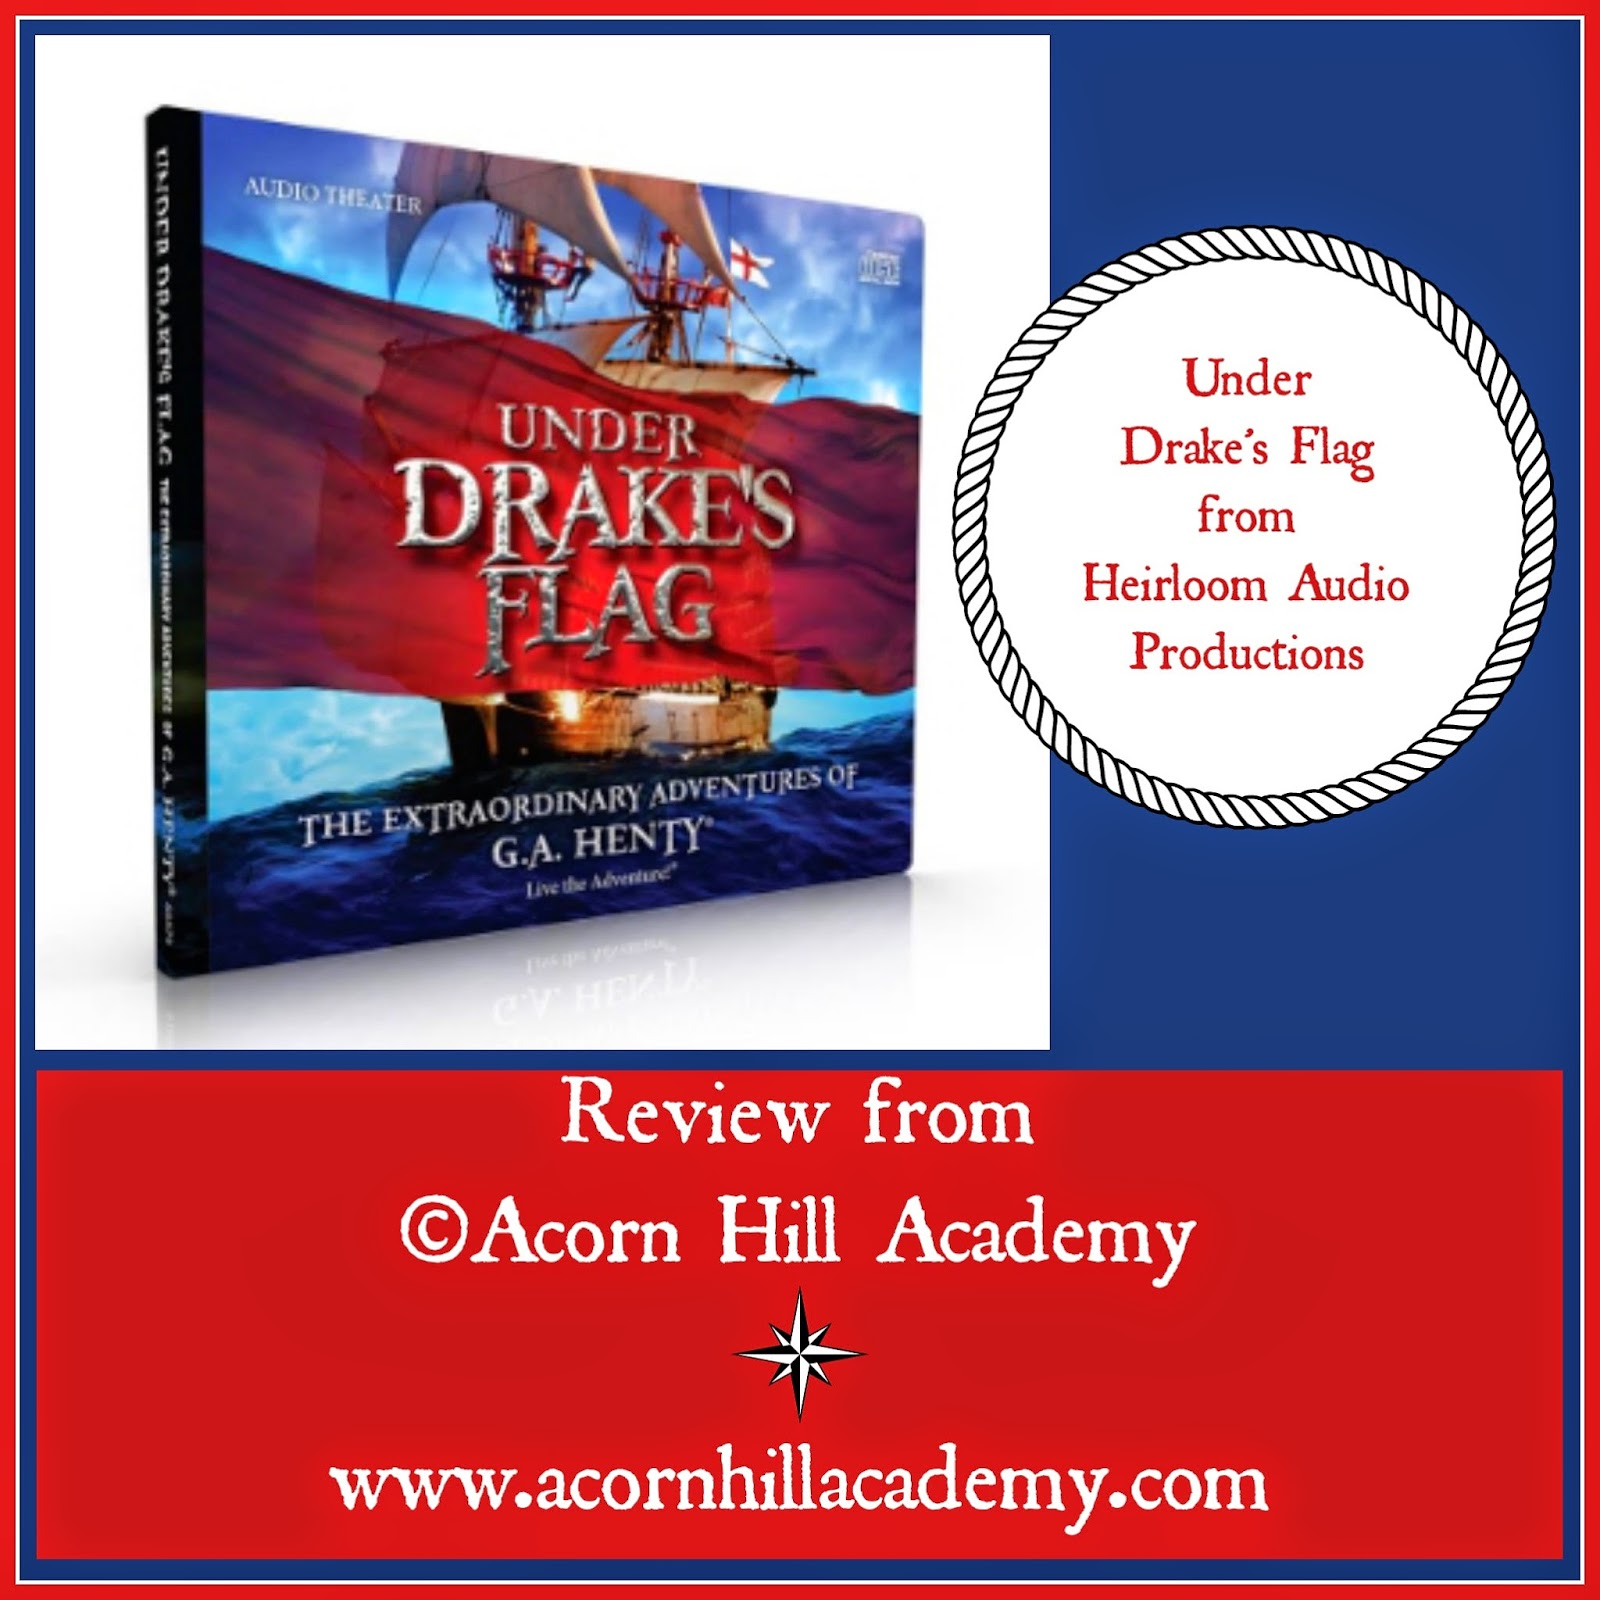 Acorn Hill Academy: REVIEW: Under Drake's Flag Audio Book